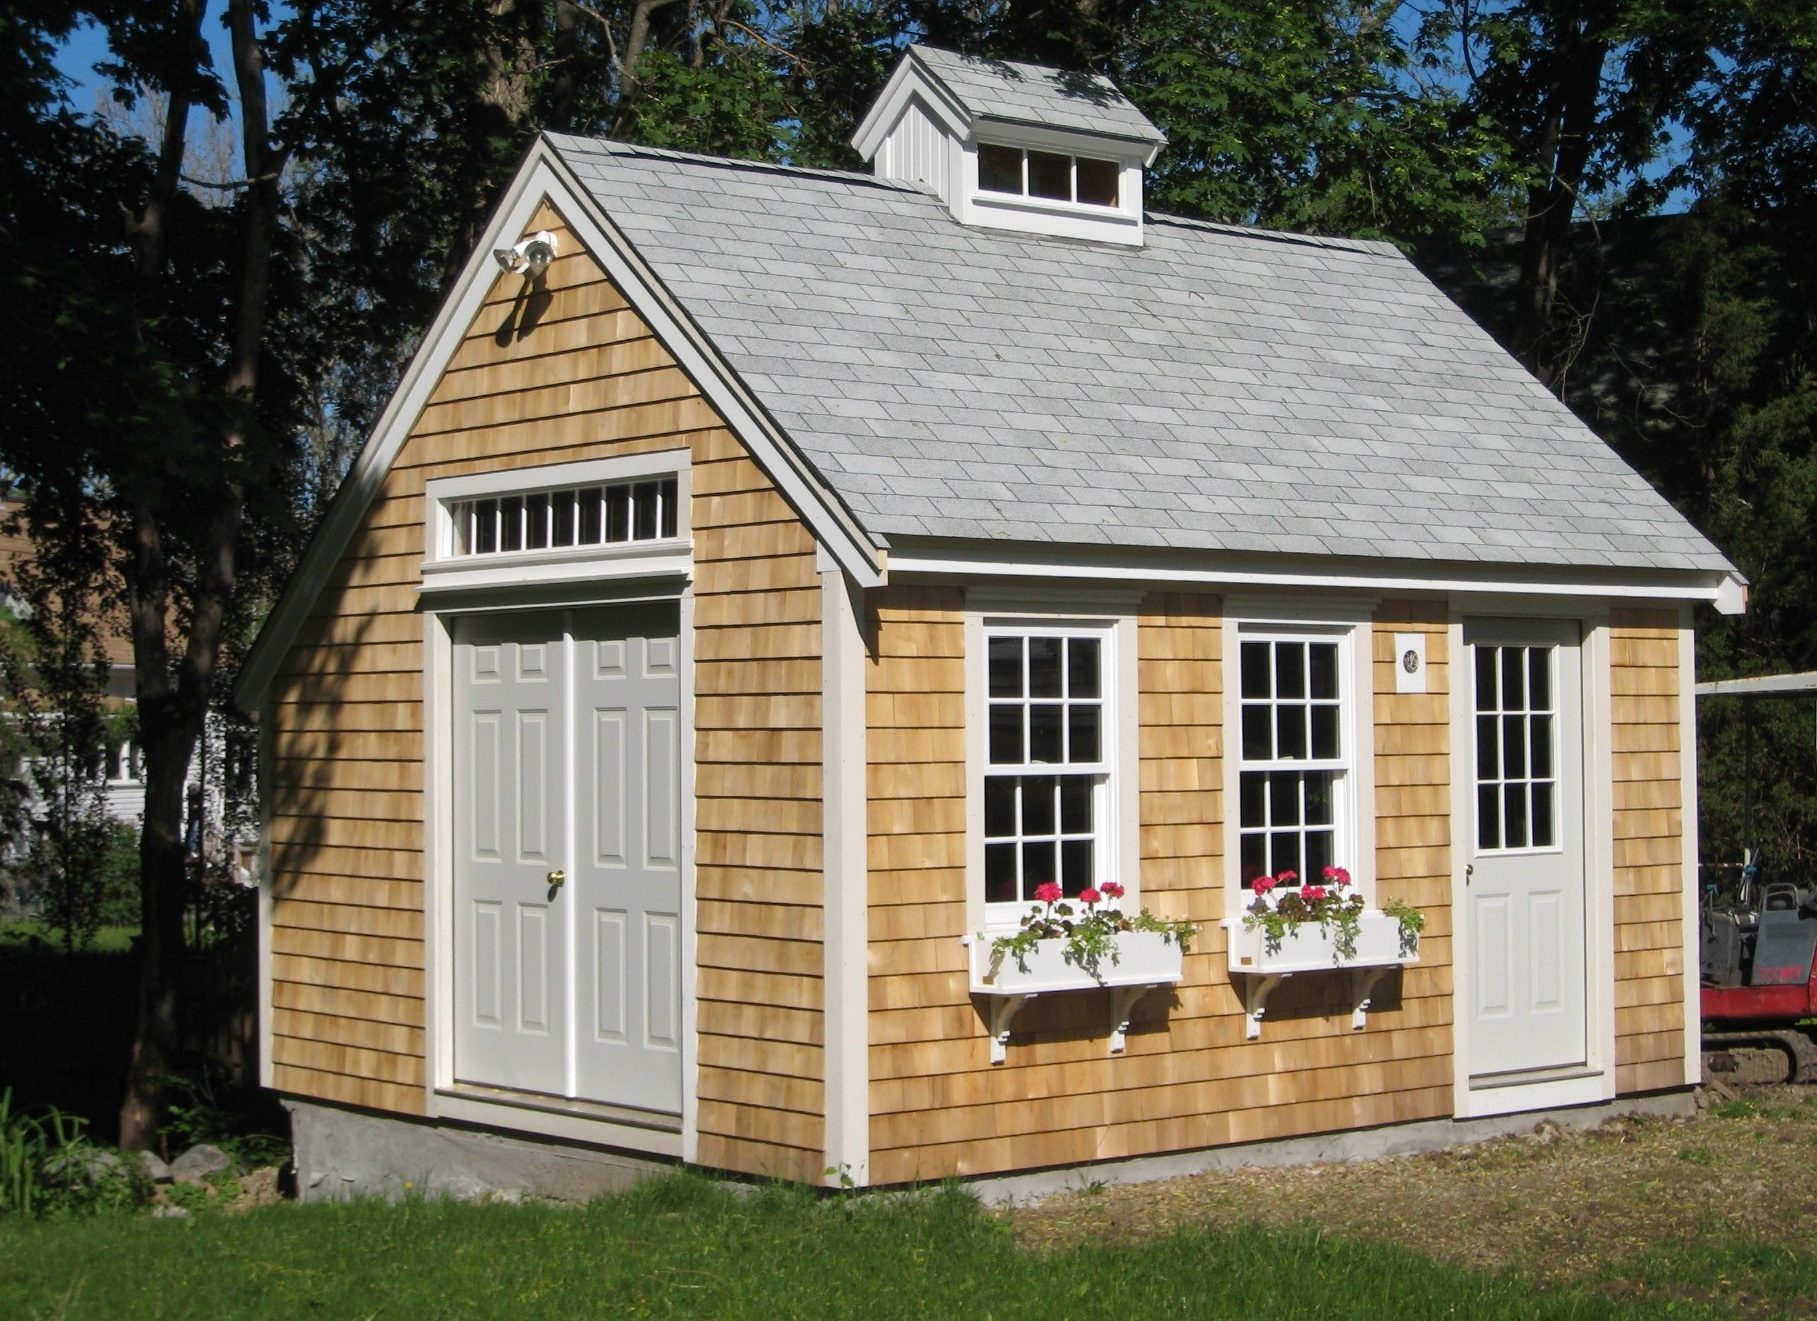 Fairytale backyards 30 magical garden sheds for Simple barn home plans